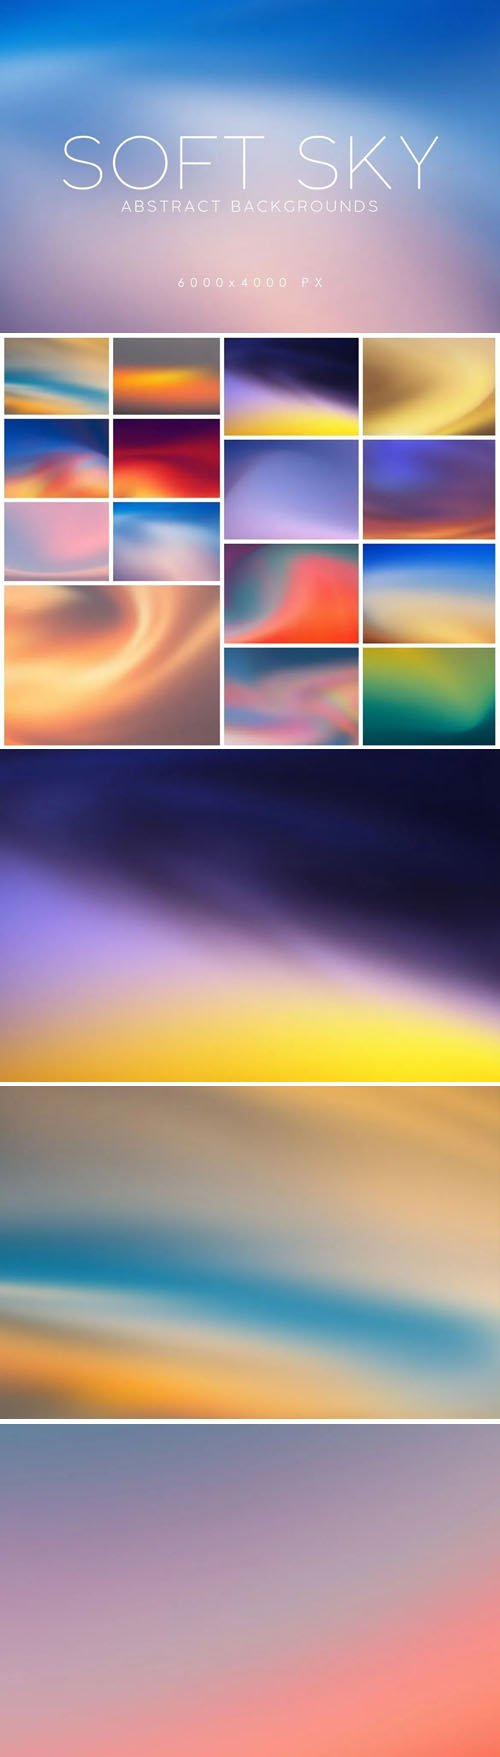 15 Soft Sky Abstract Backgrounds